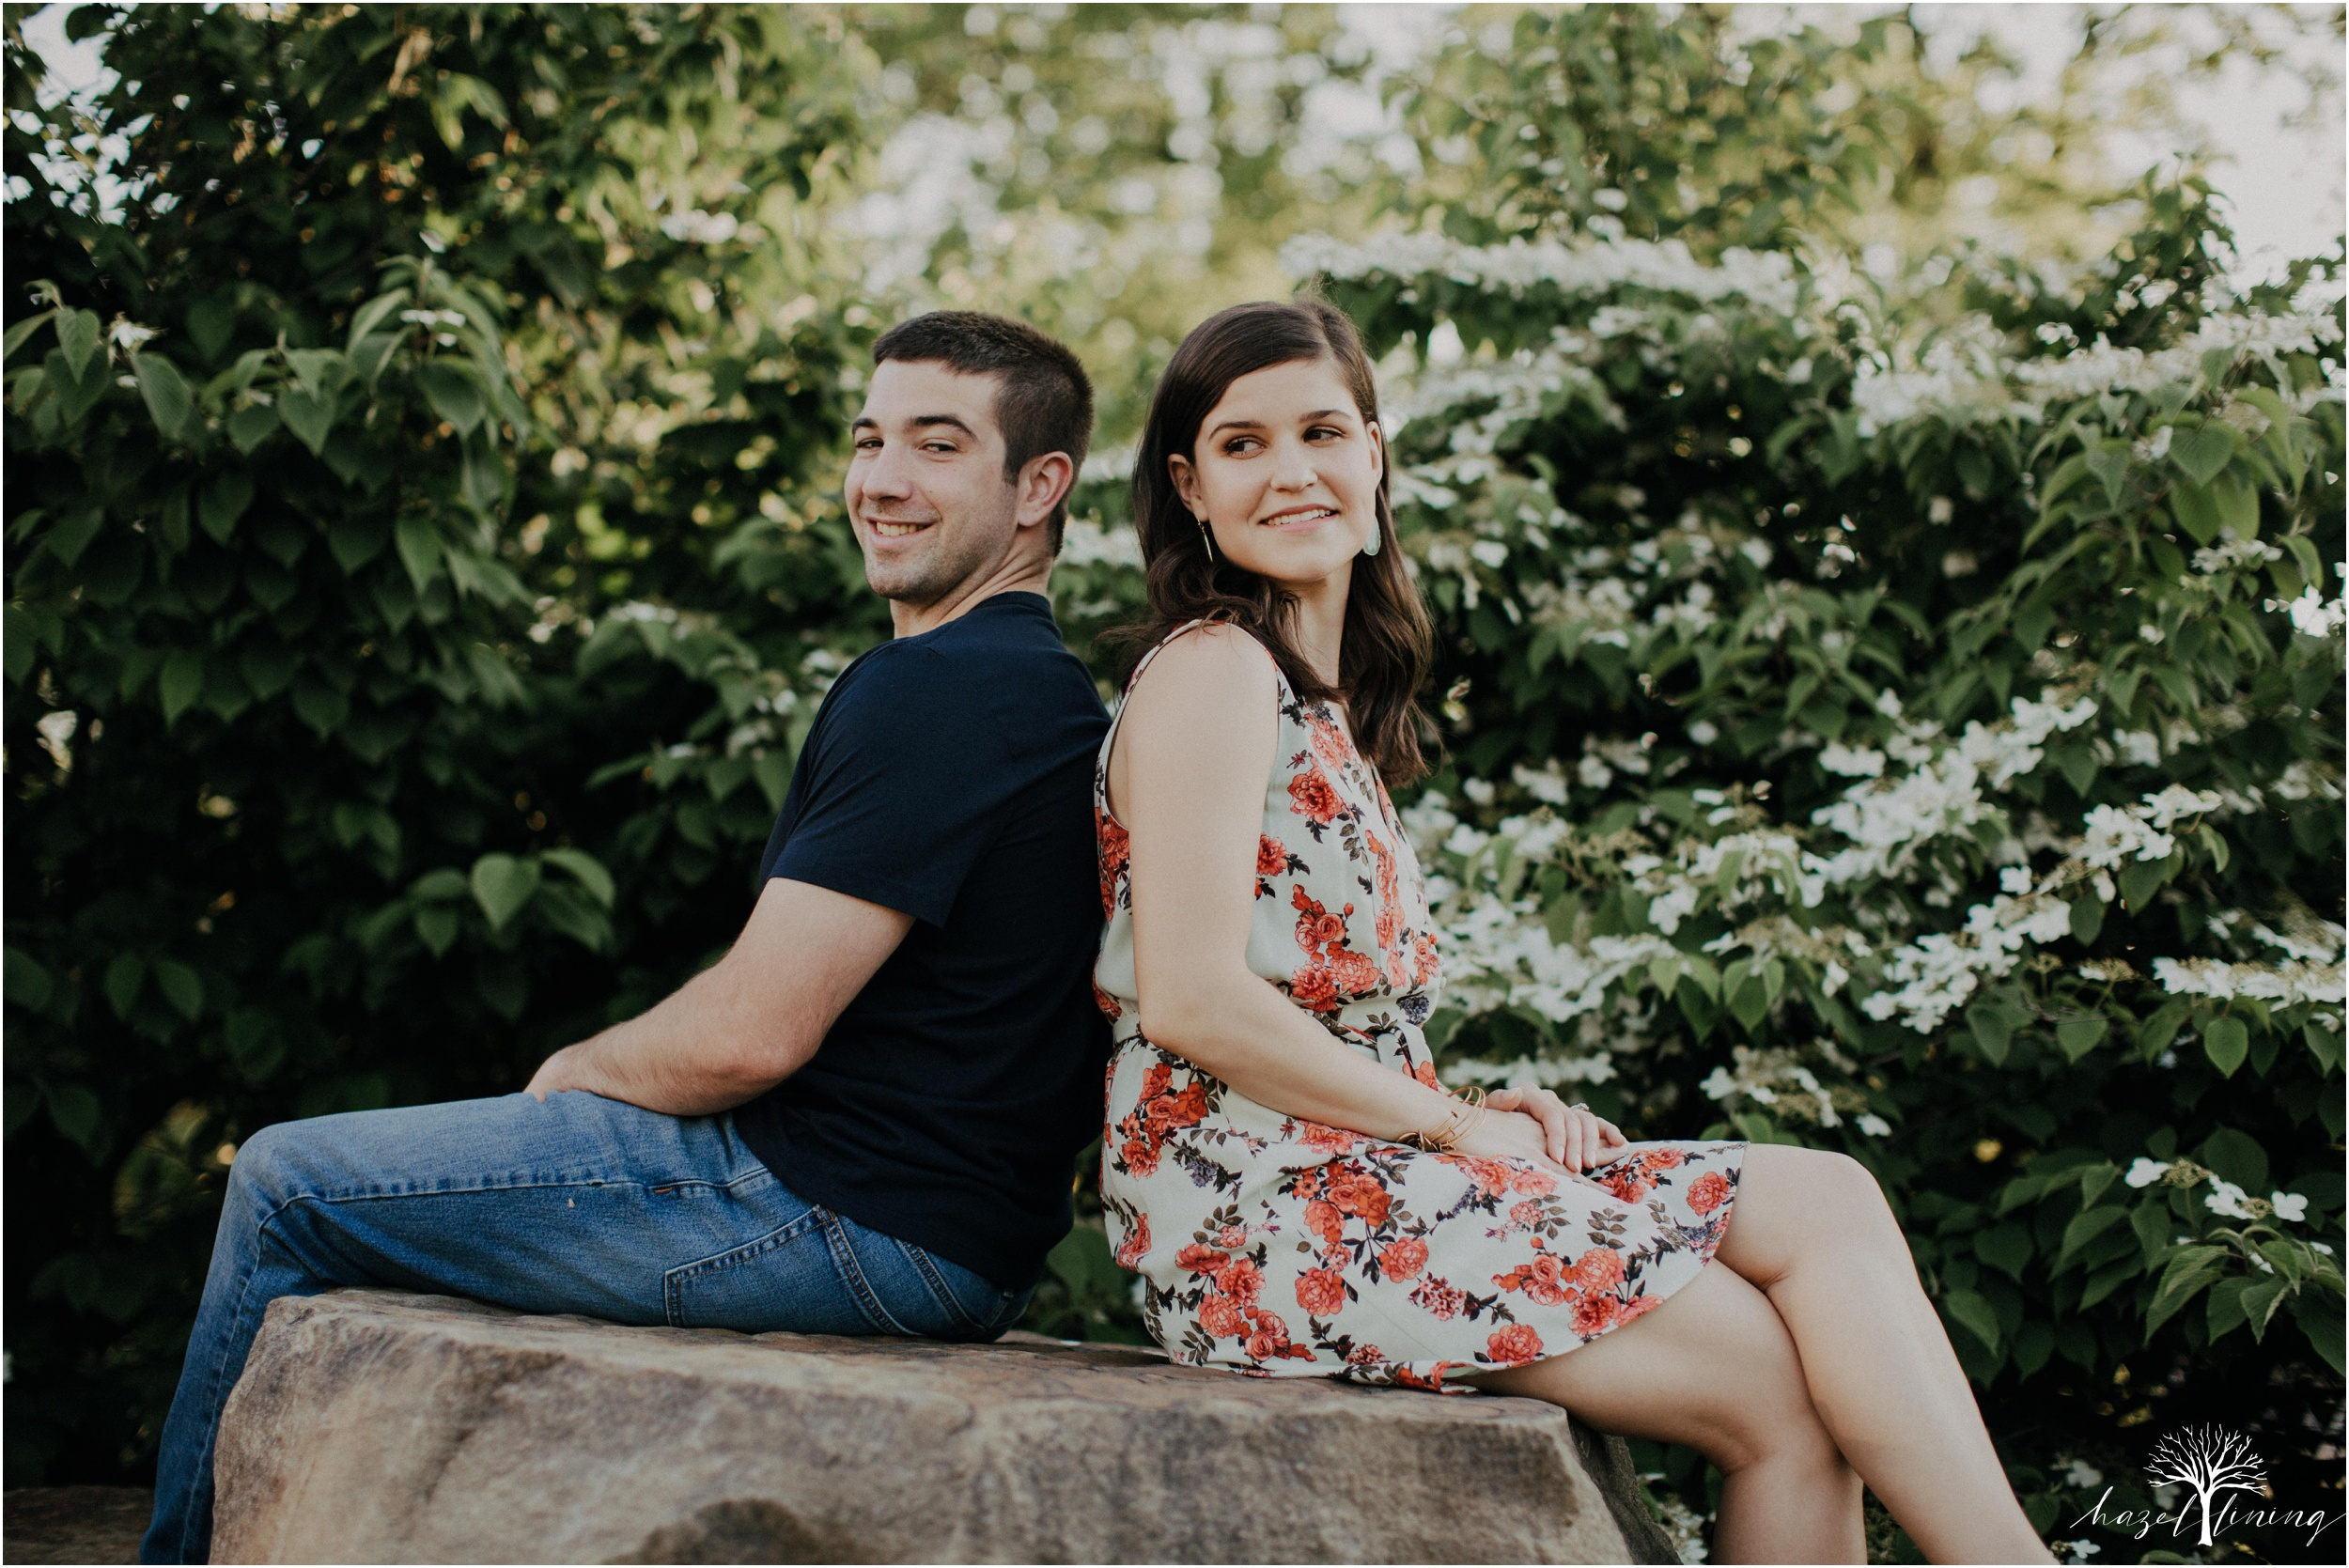 ellyn-jack-kutztown-university-of-pennsylvania-engagement-session-hazel-lining-photography-destination-elopement-wedding-engagement-photography_0253.jpg